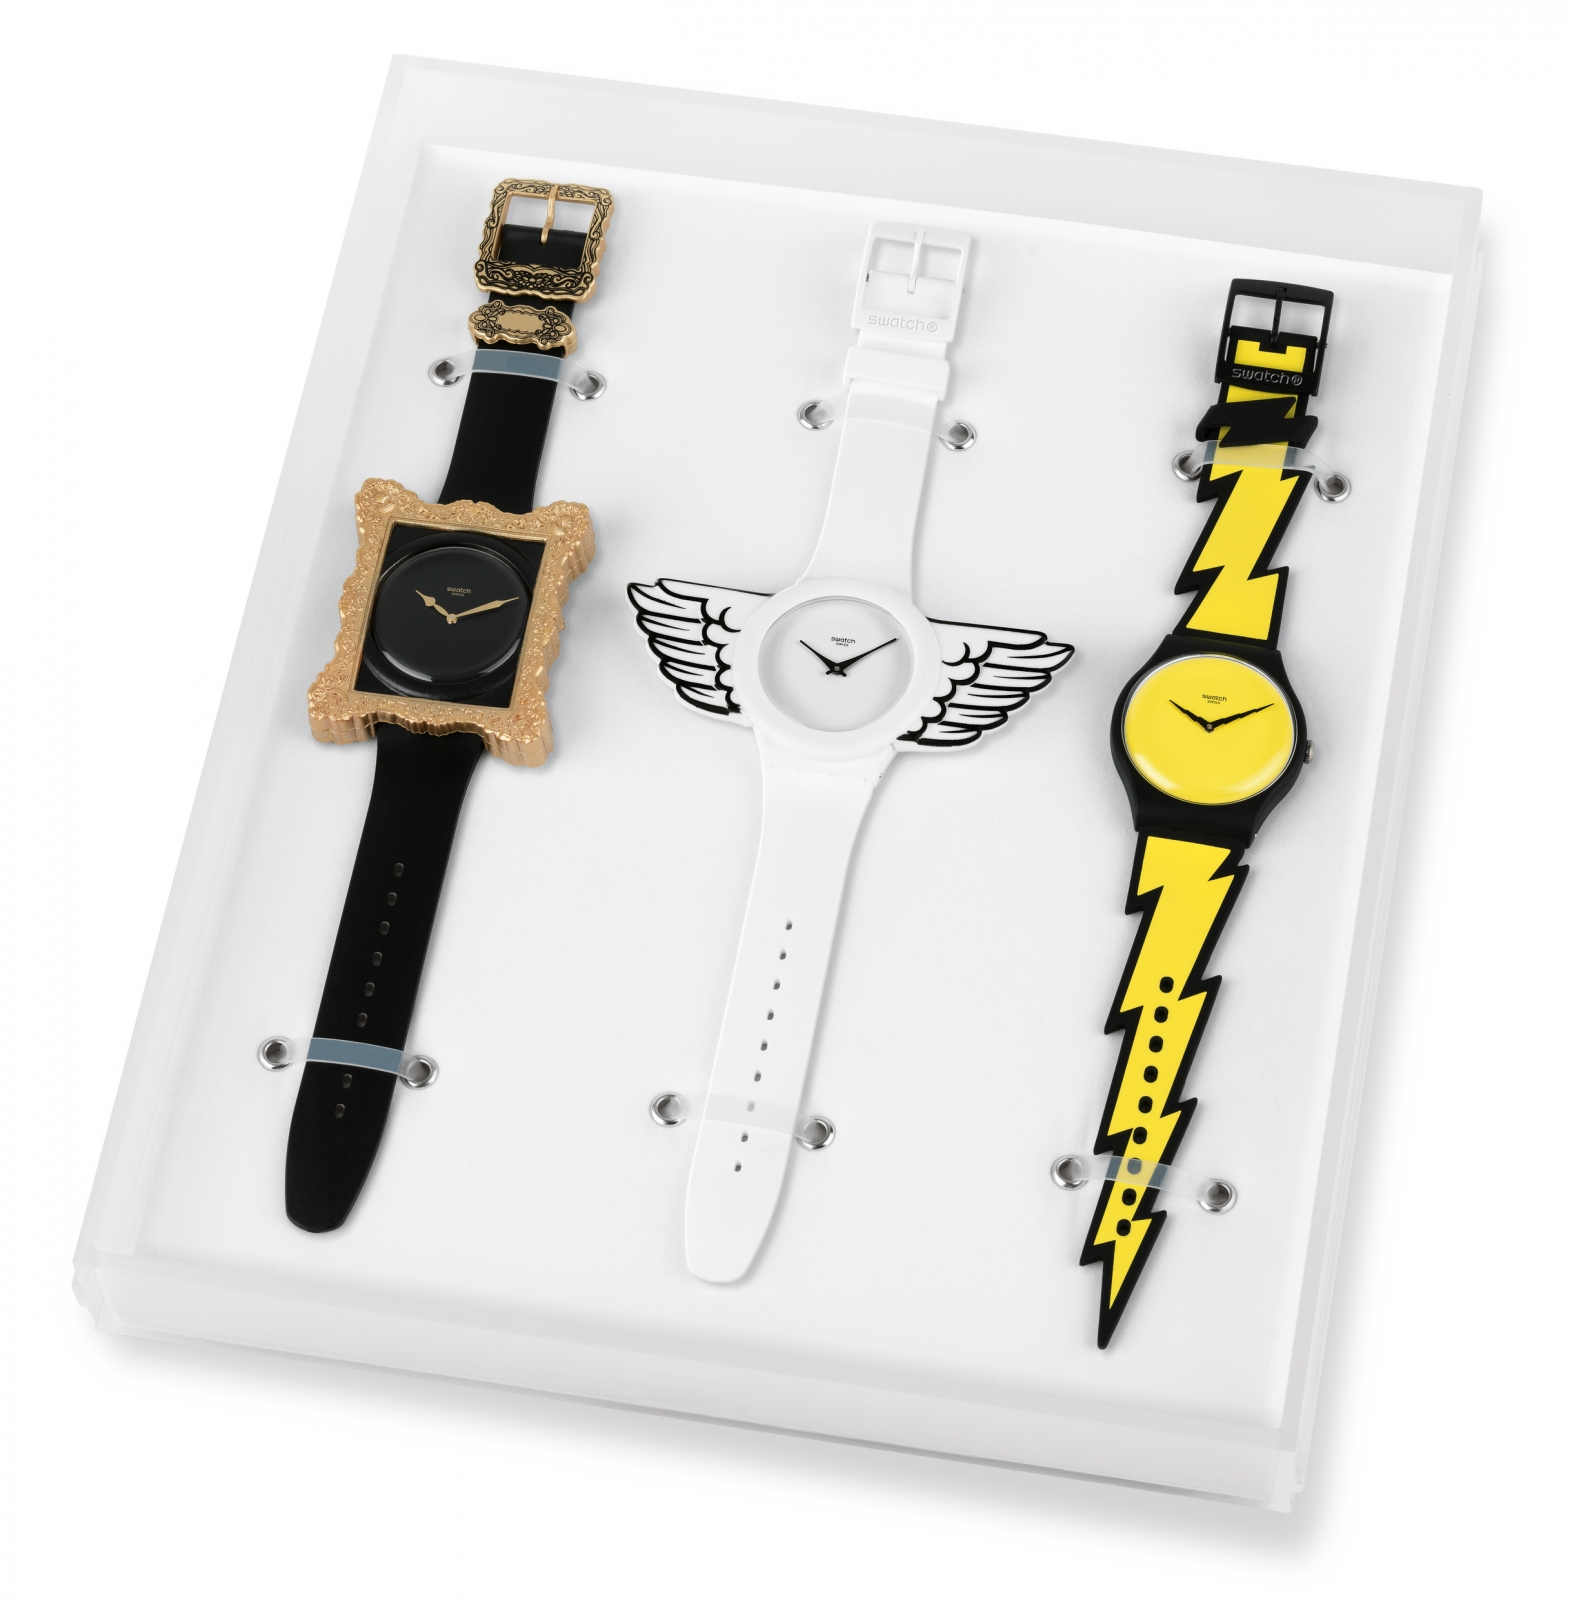 New swatch designs by Jeremy Scott